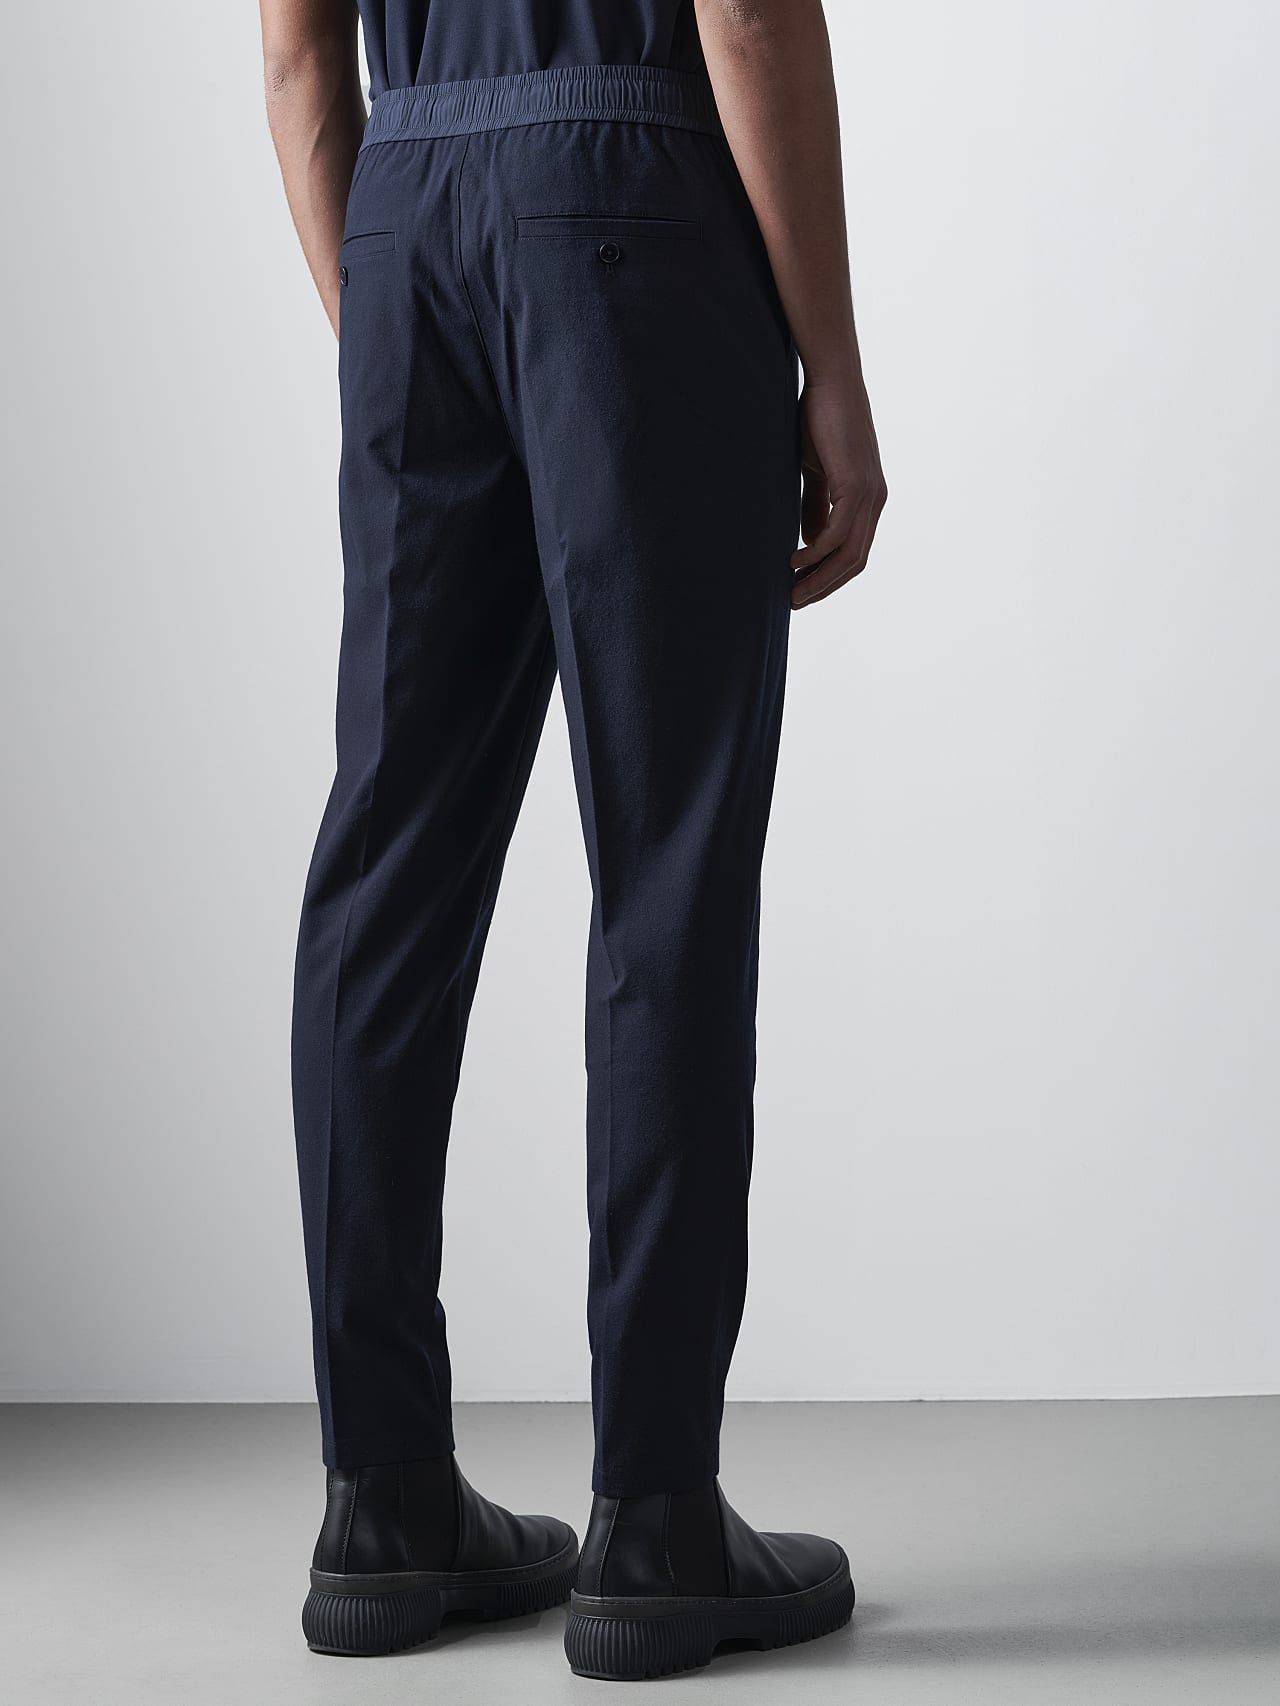 PANZA V1.Y5.02 Slim Pleat Trousers navy Front Main Alpha Tauri